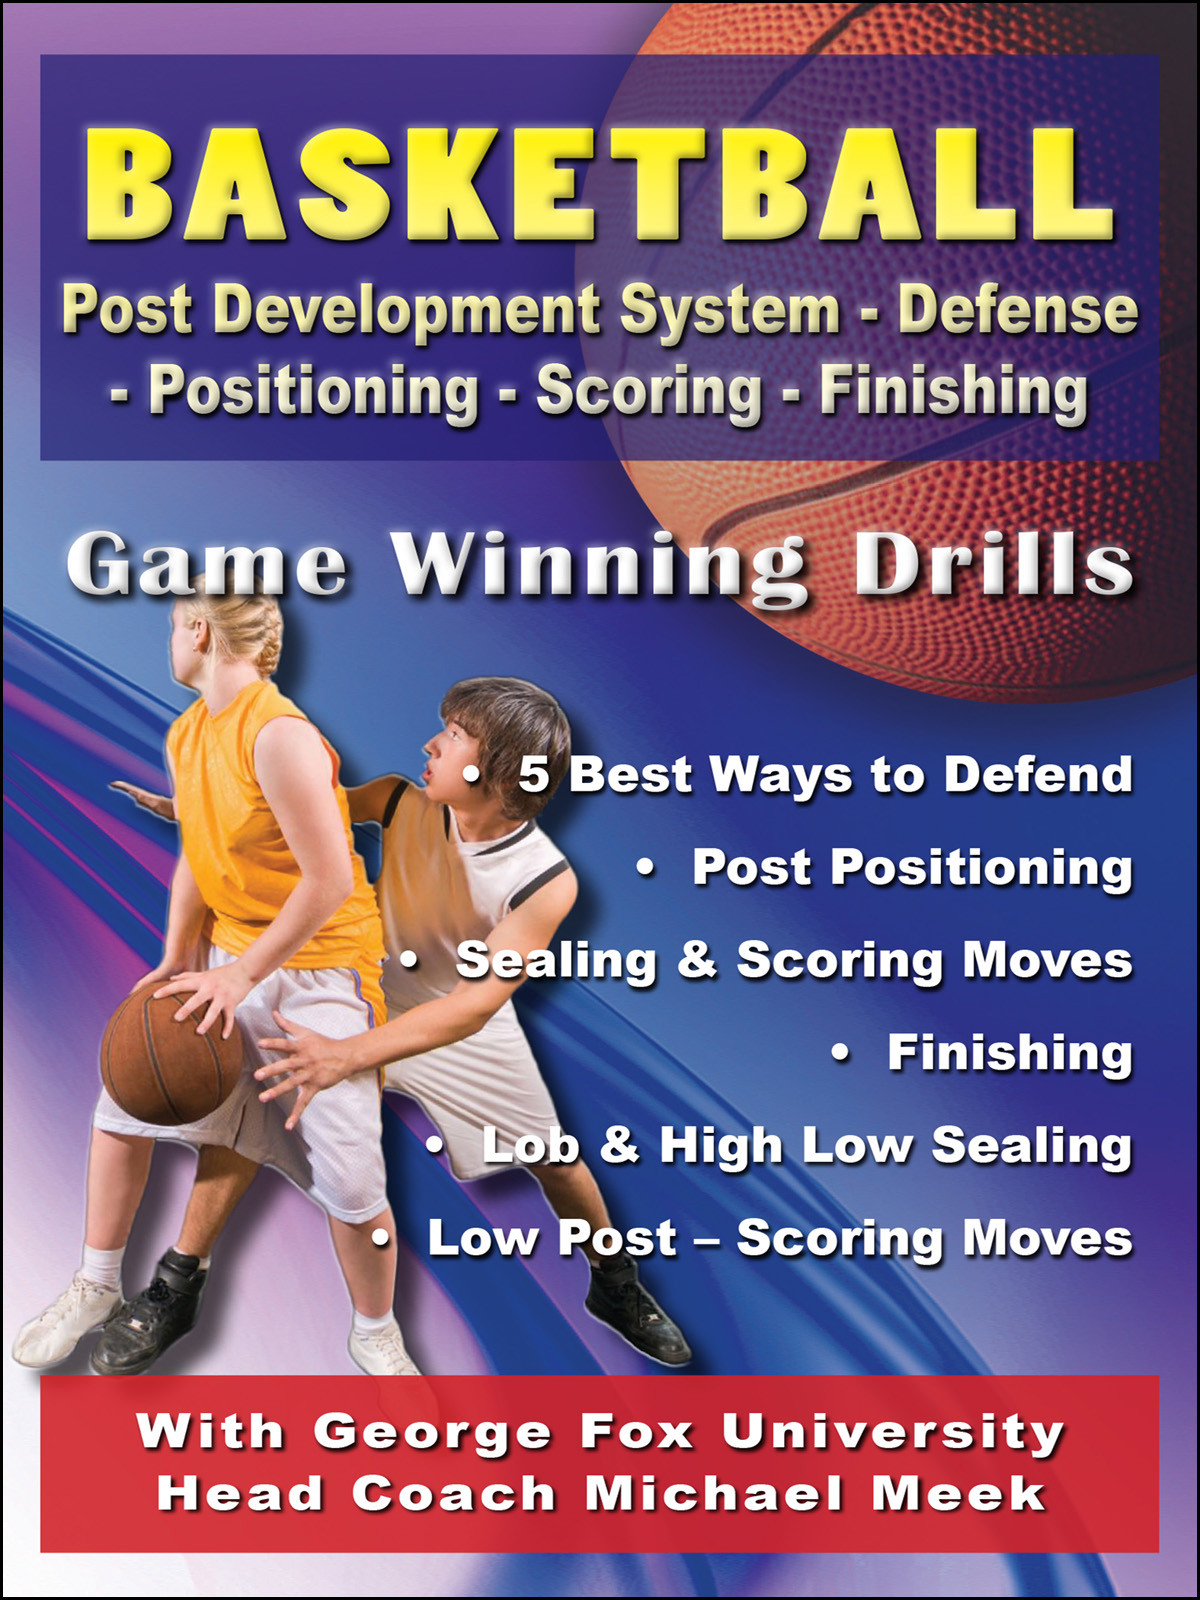 K4208 - Basketball Post Development System ? Defense-Positioning-Scoring-Finishing